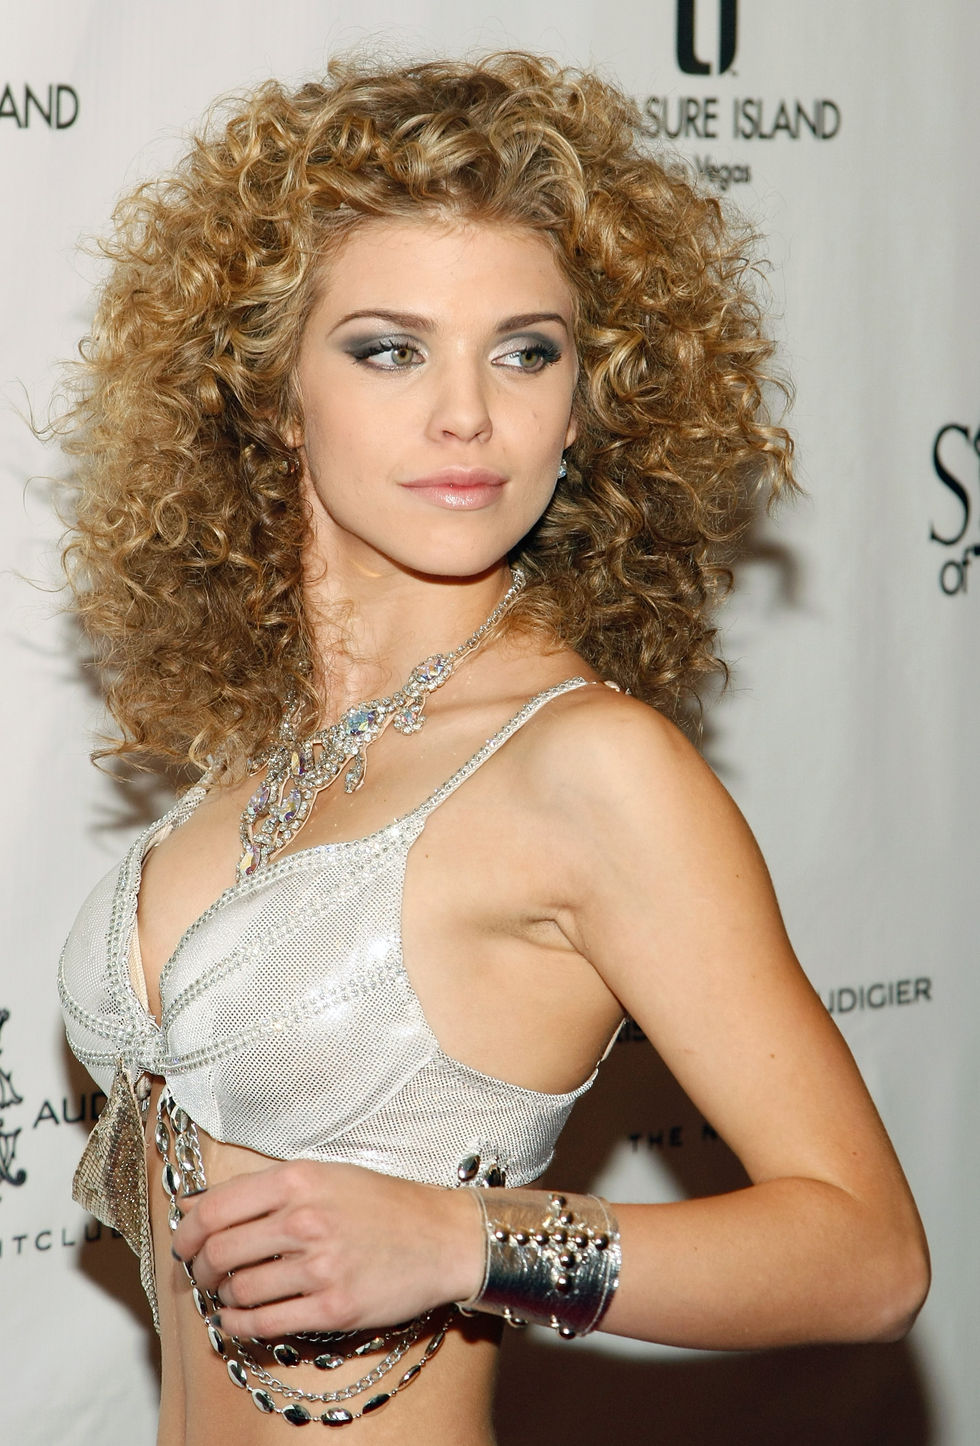 annalynne-mccord-sirens-of-ti-anniversary-show-and-after-party-in-las-vegas-01